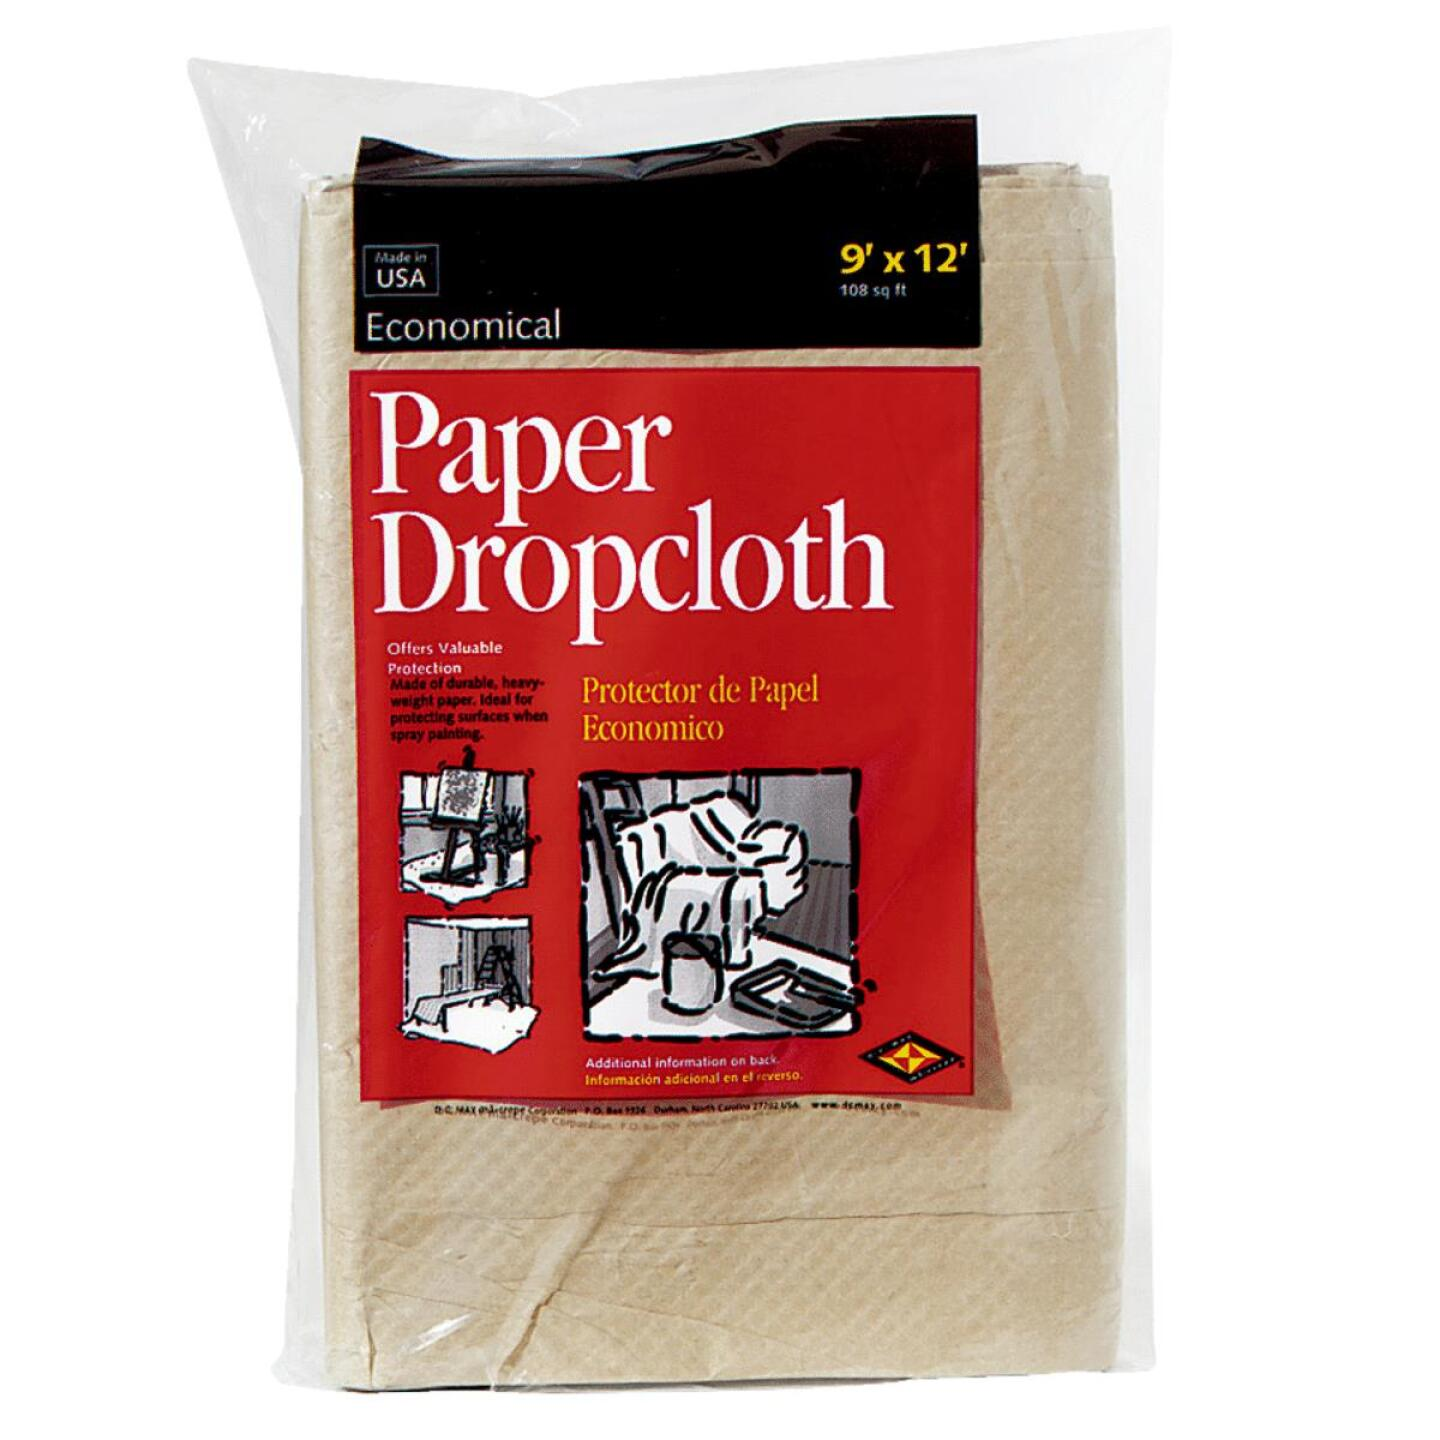 Trimaco EcoDrop Paper 9 Ft. x 12 Ft. All-Purpose Drop Cloth Image 1